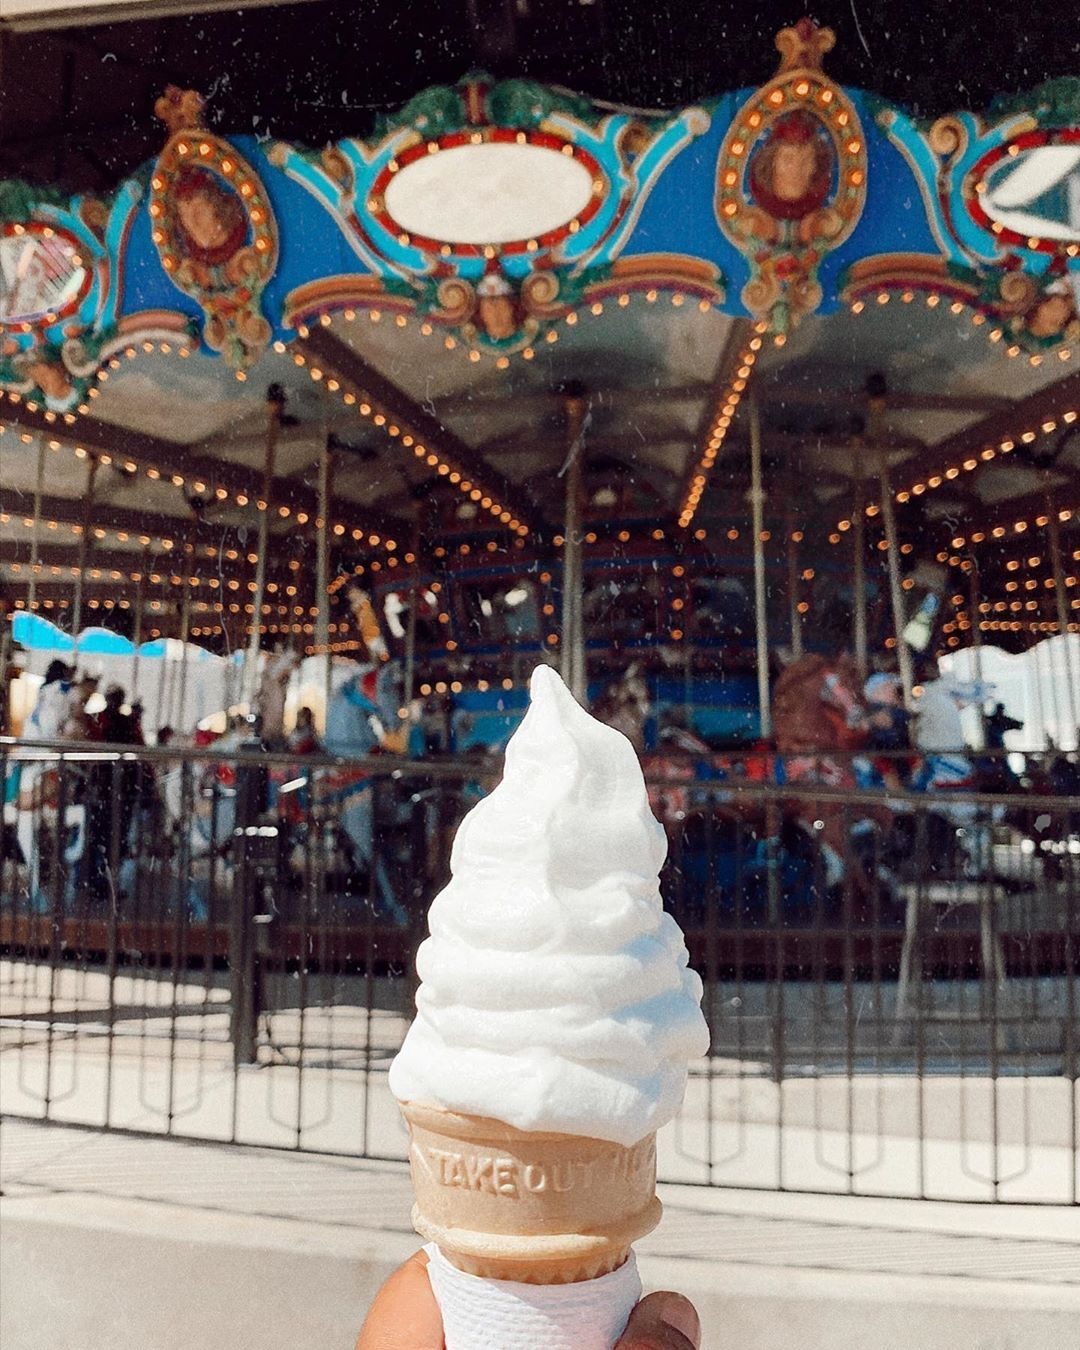 🎠🍦dole whip for breakfast - day made . . .